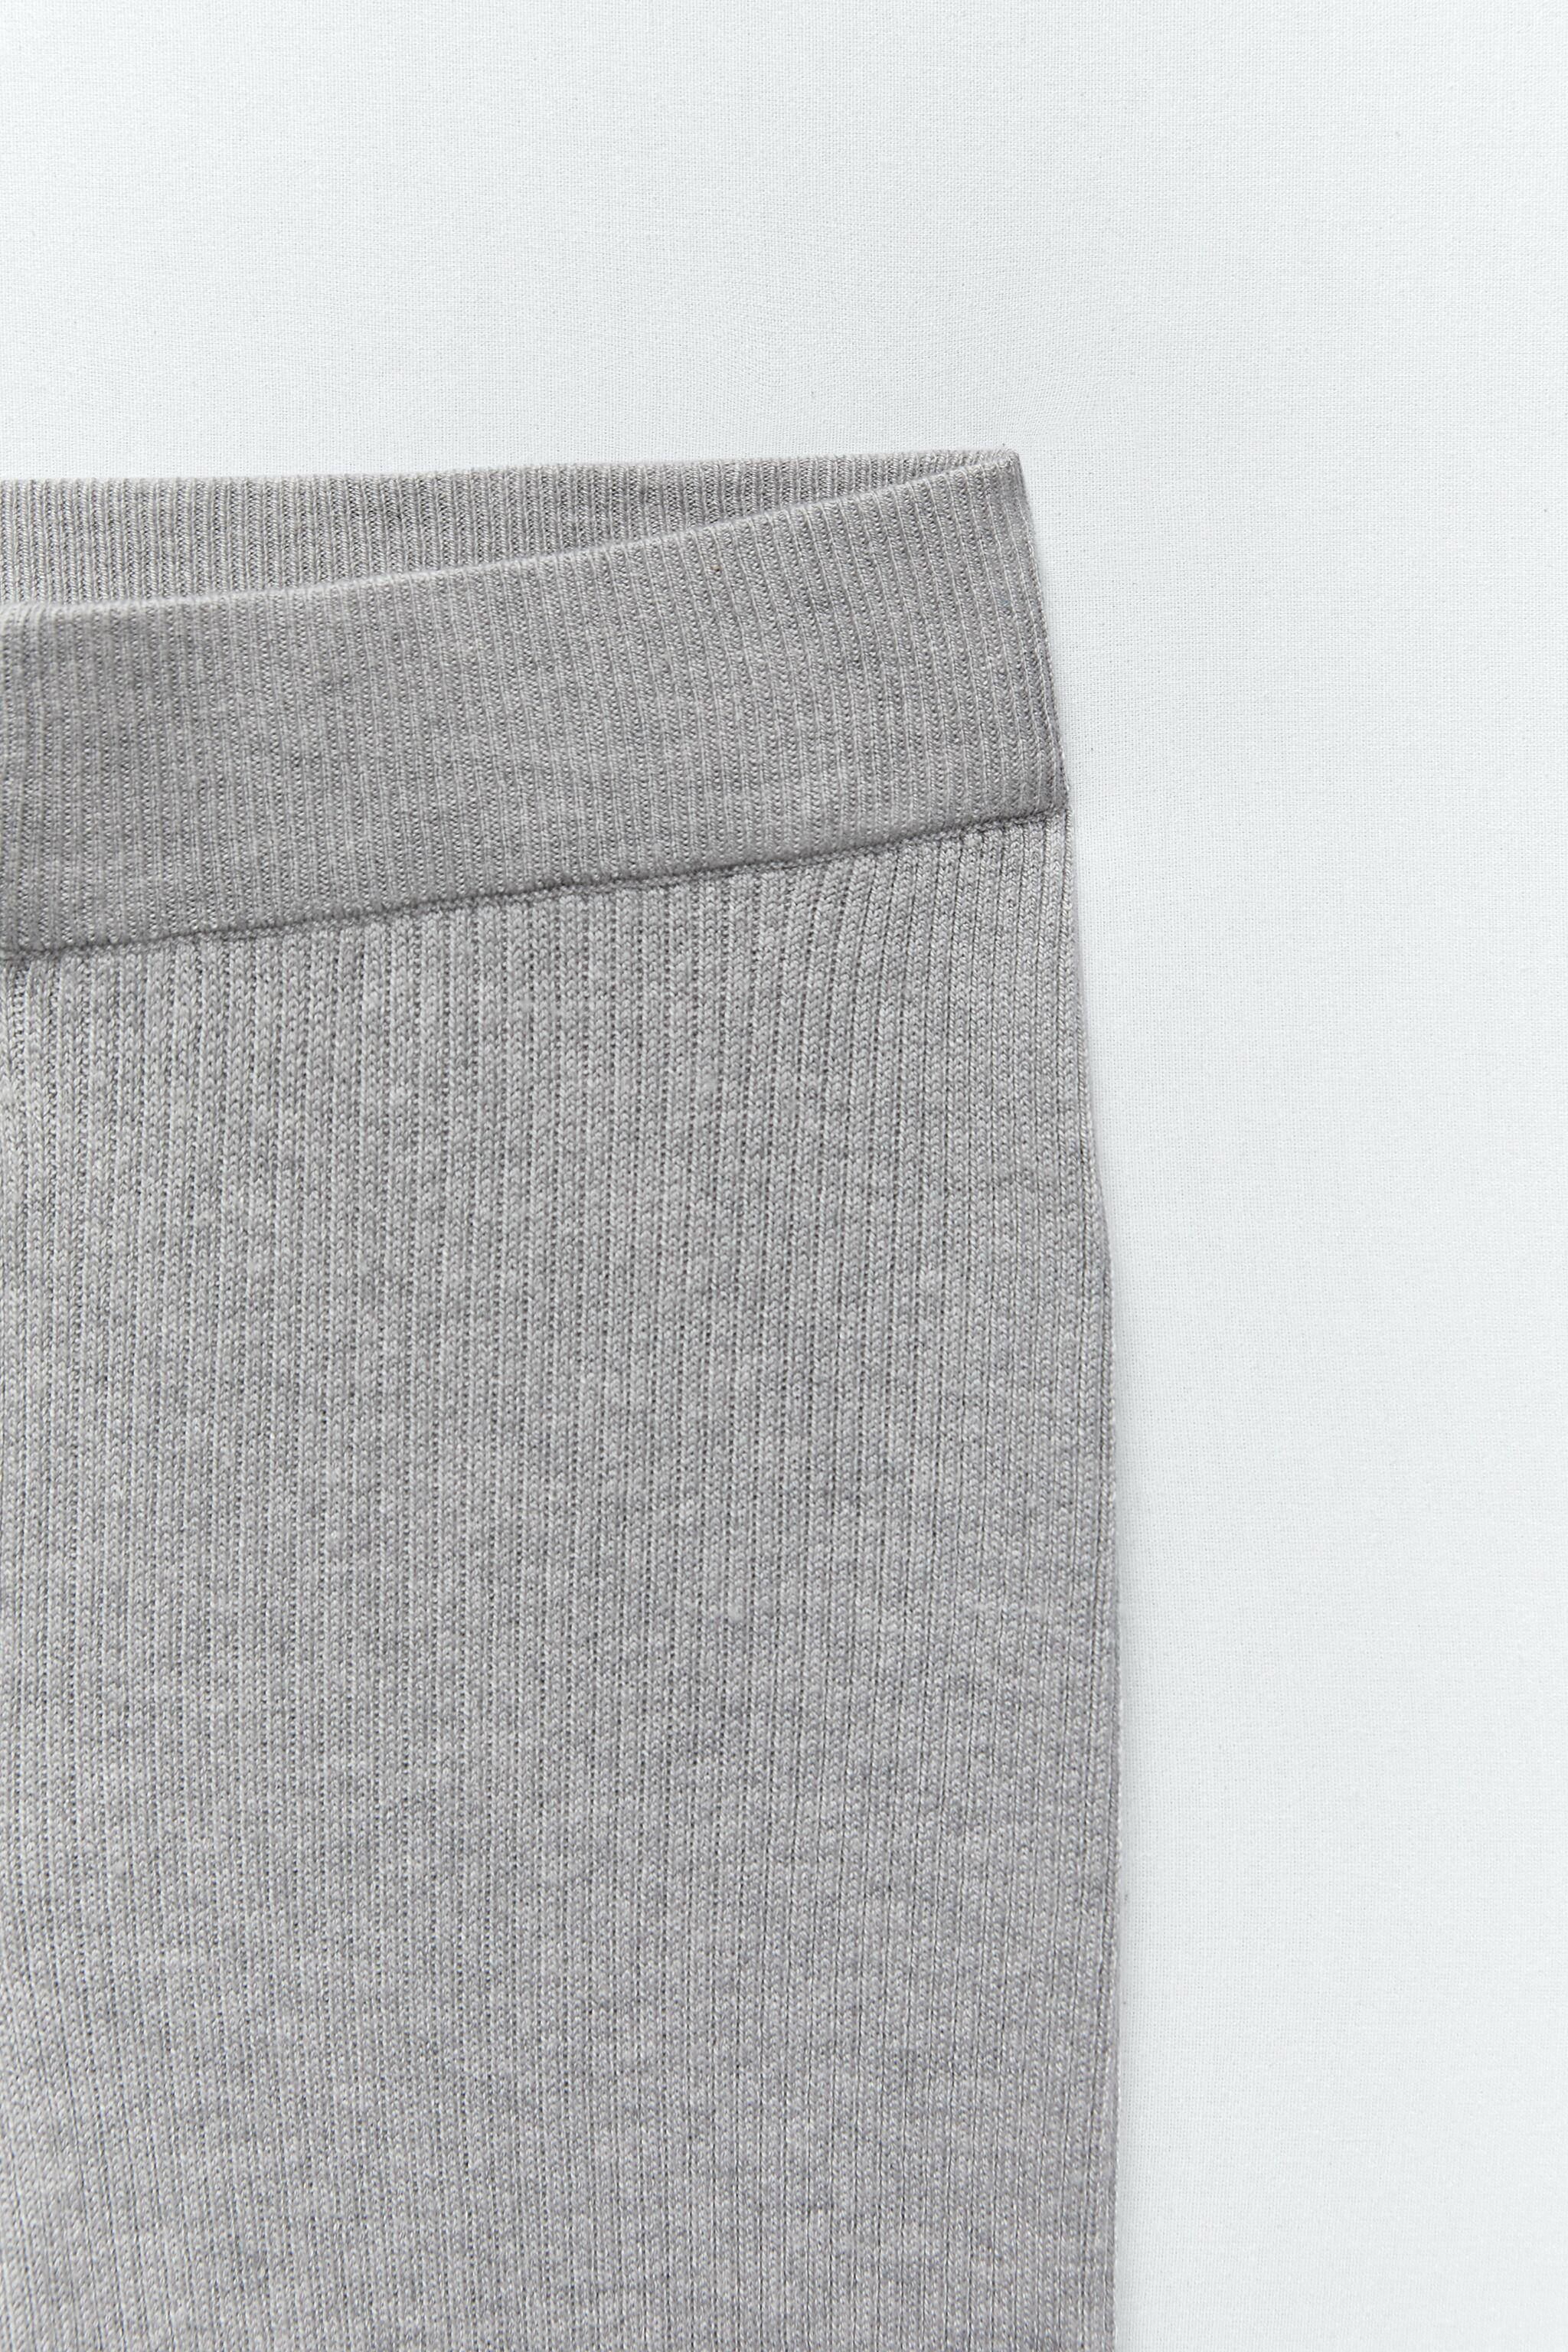 FLARED KNIT PANTS 6